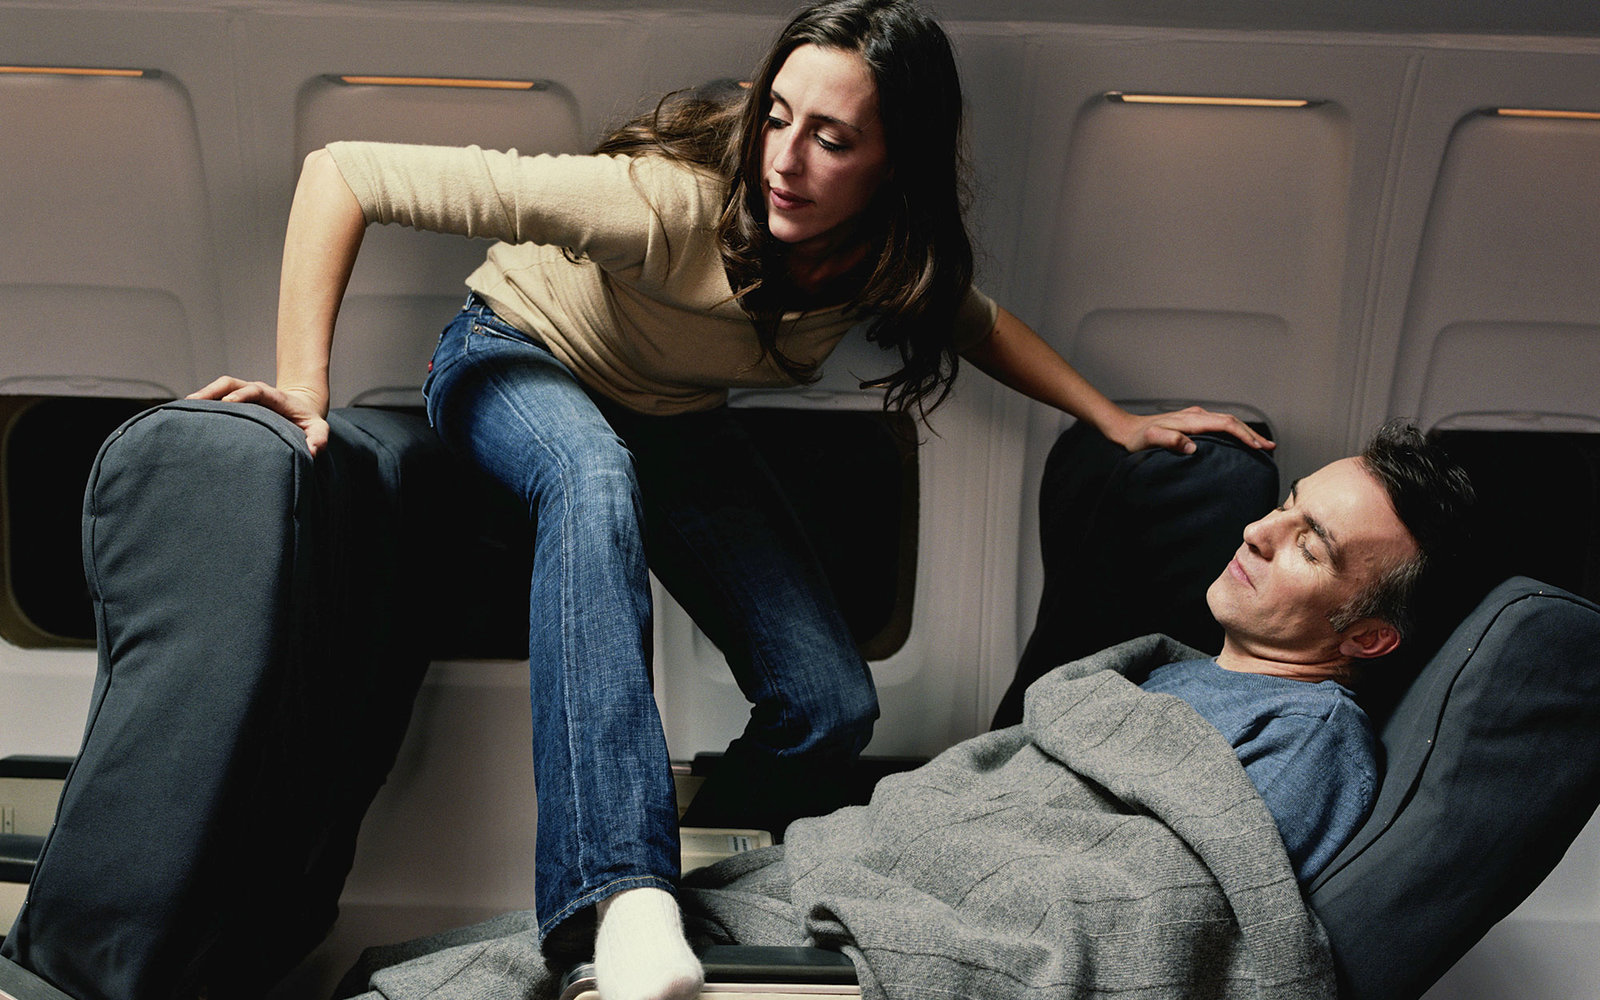 Young woman climbing over sleeping male passenger on aeroplane